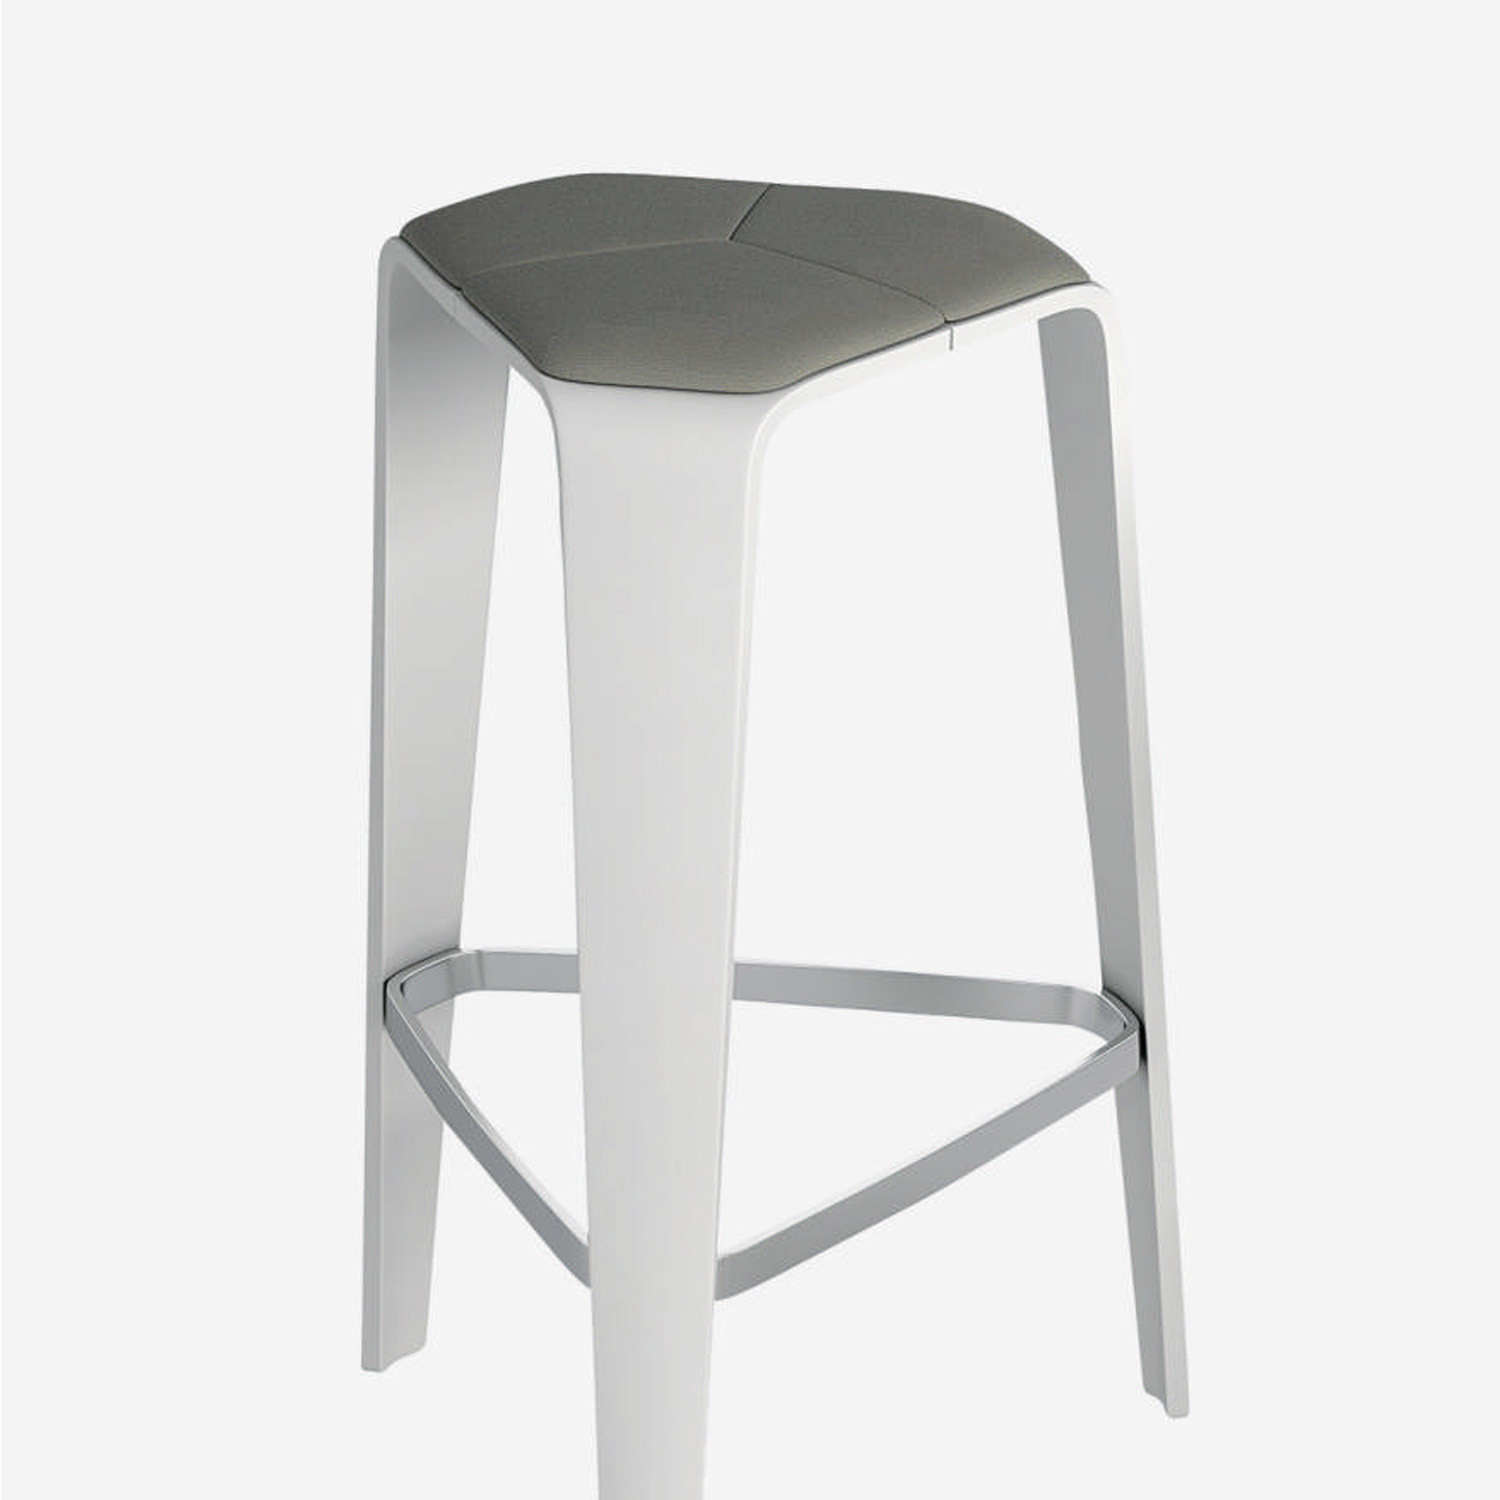 Hoc Bar Height Stool with Seat Liner